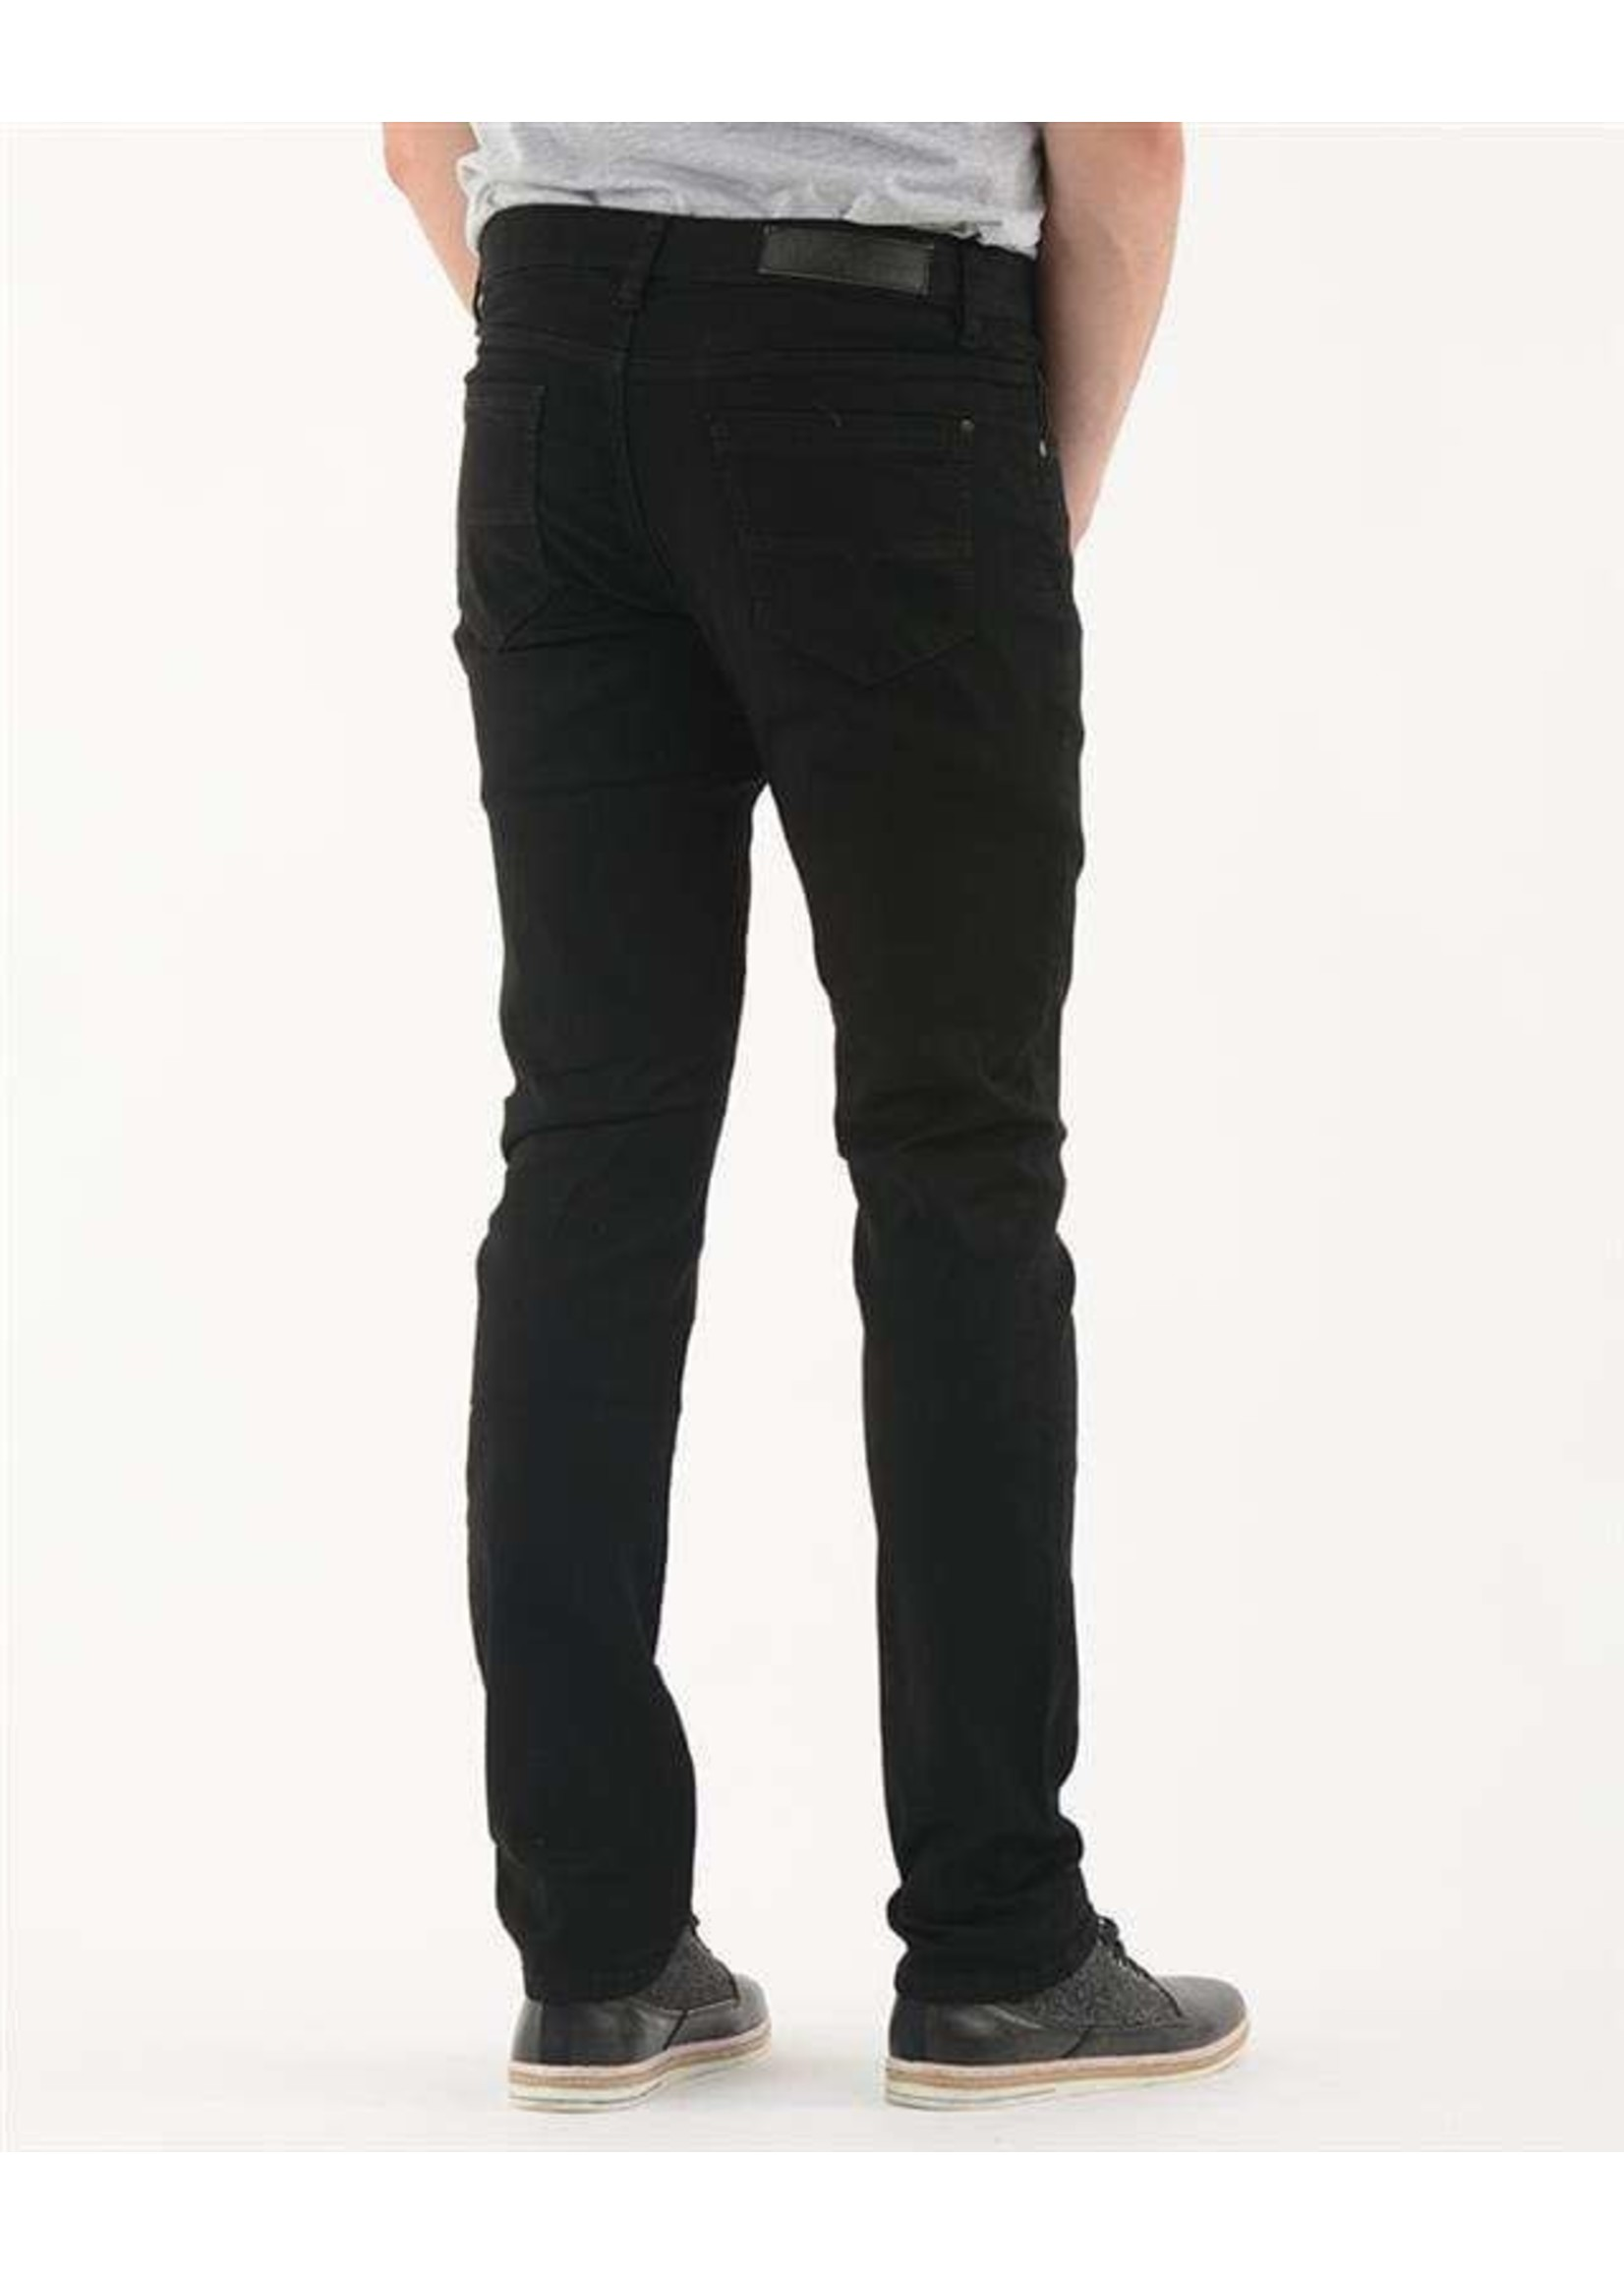 """Lois Jeans Canada The """"Peter Slim 5954"""" by Lois Jeans"""